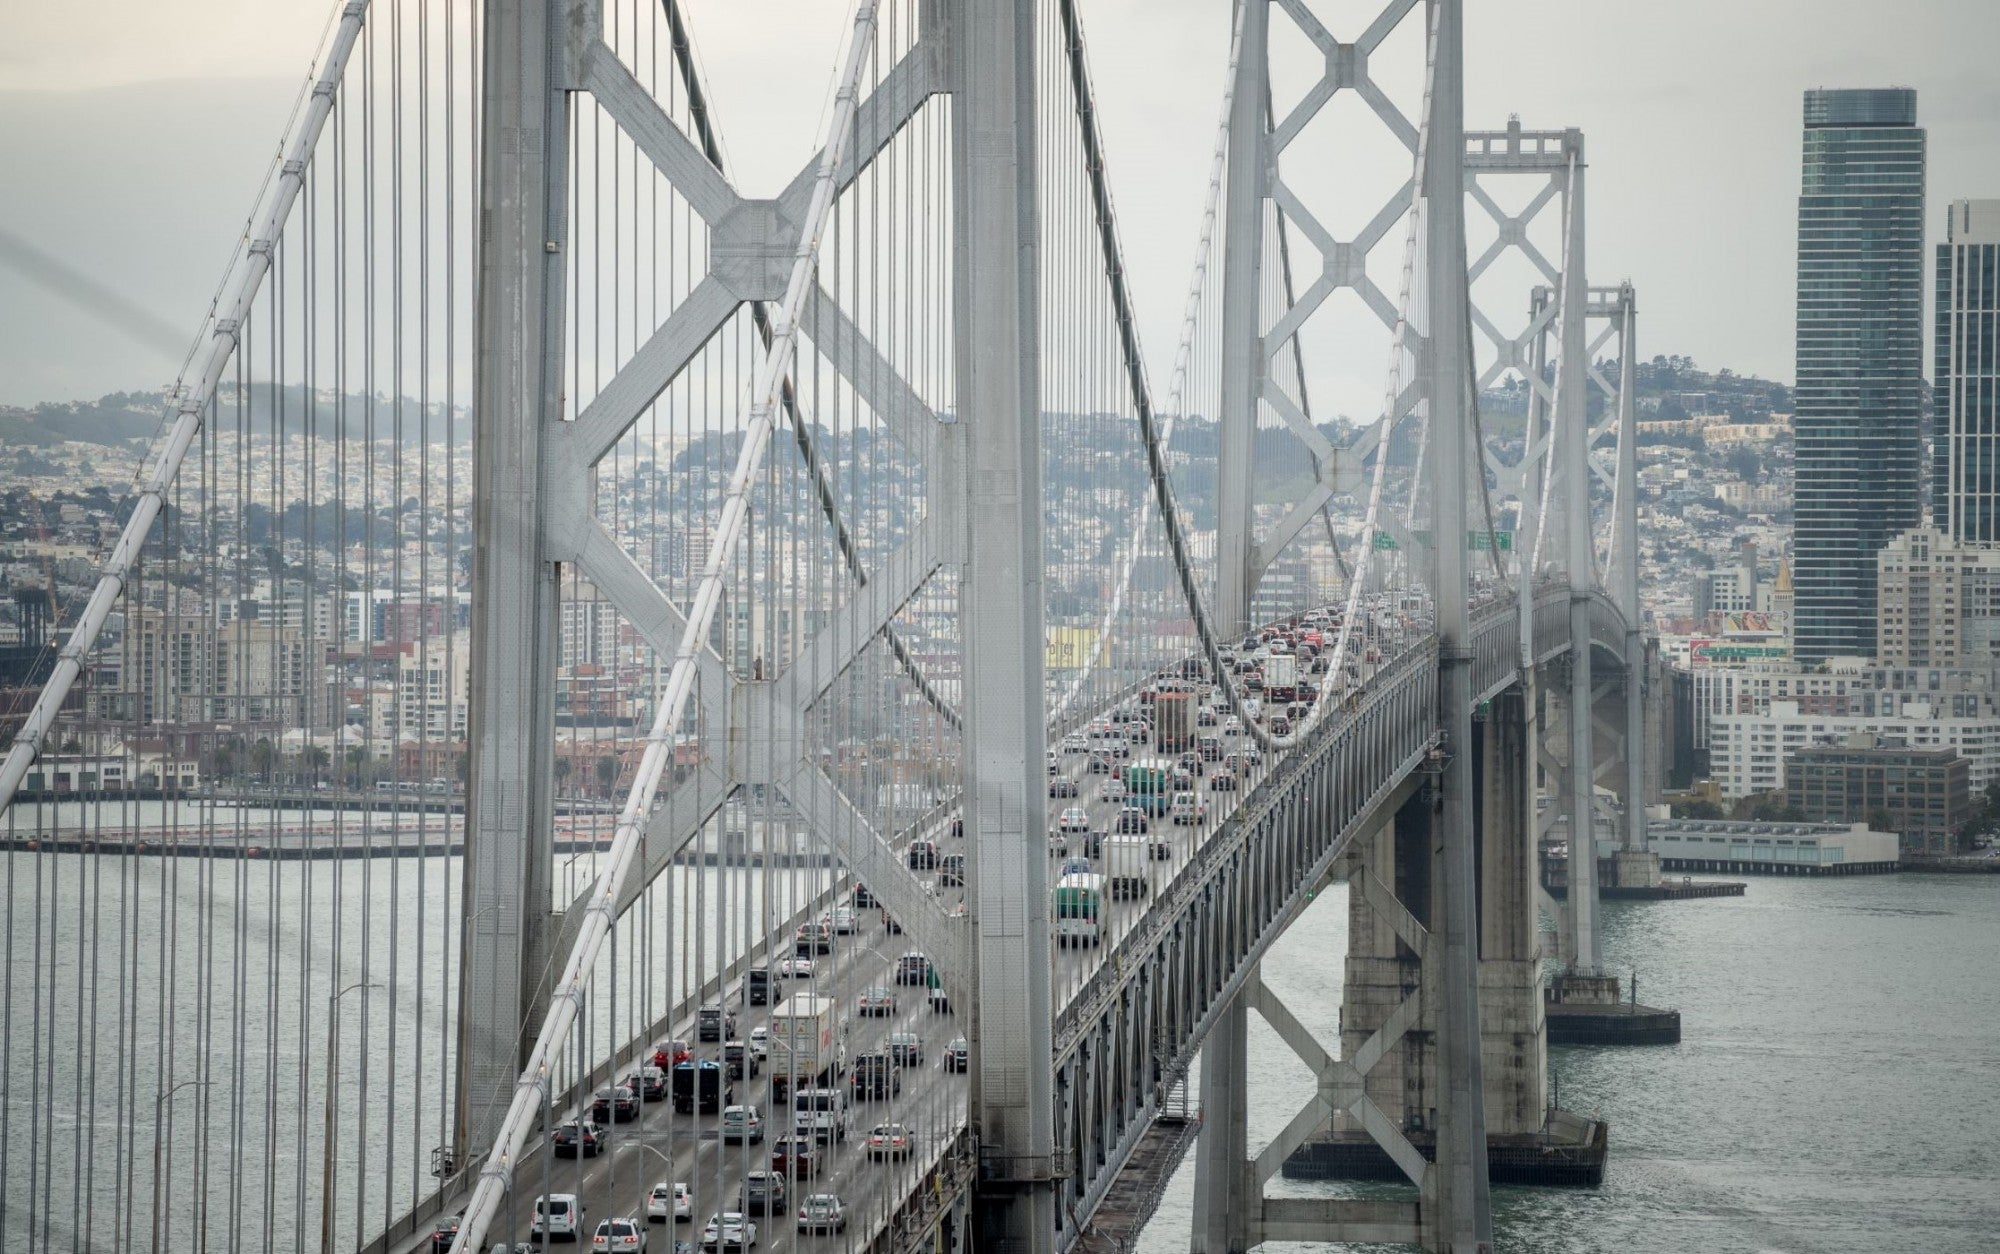 Cars travel west toward San Francisco on the upper deck of the Bay Bridge while SF's cityscape is in the background